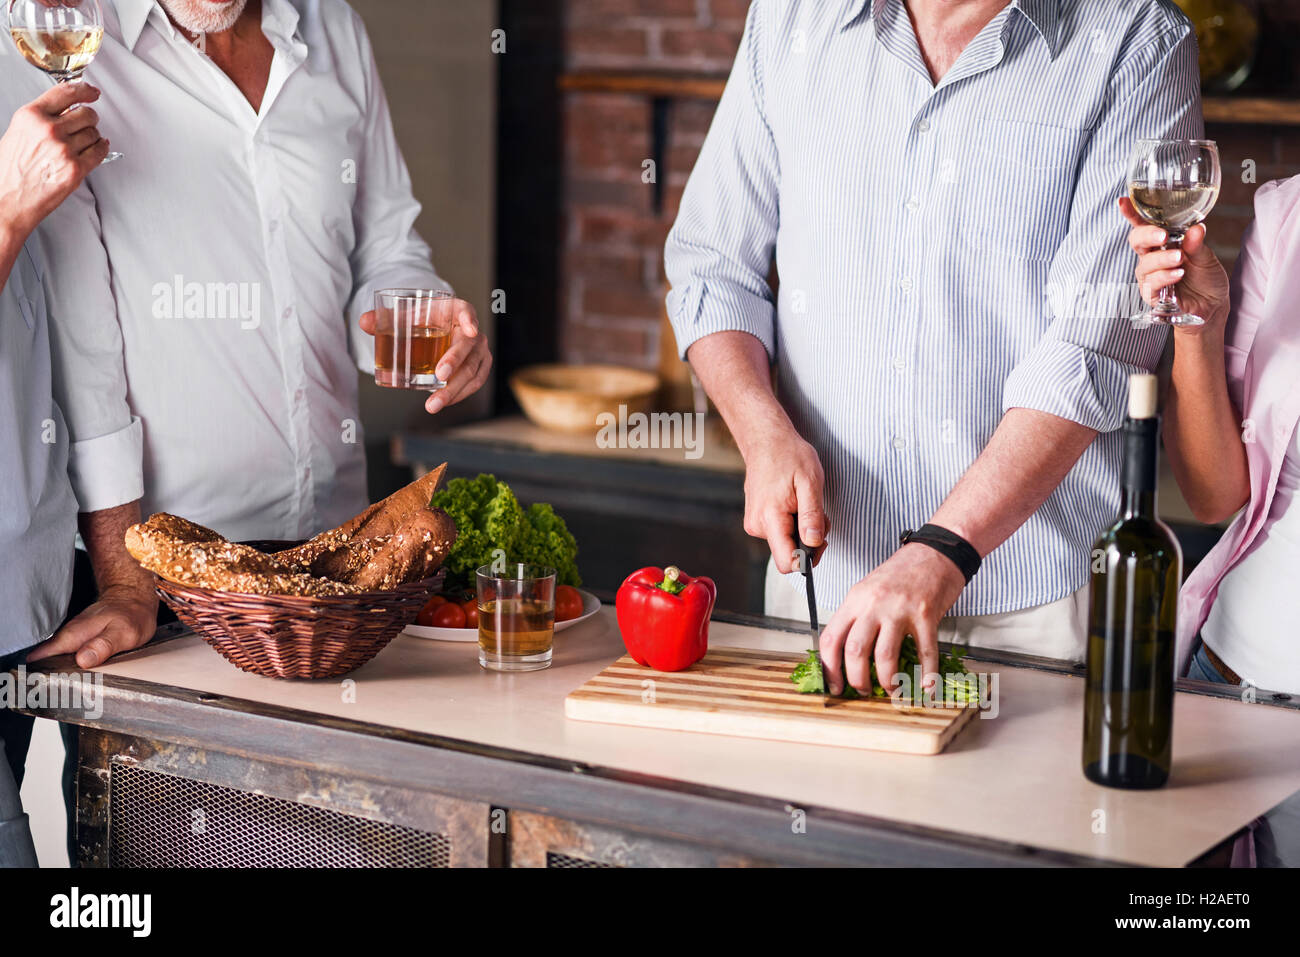 Happy family cooking together in kitchen during reunion - Stock Image